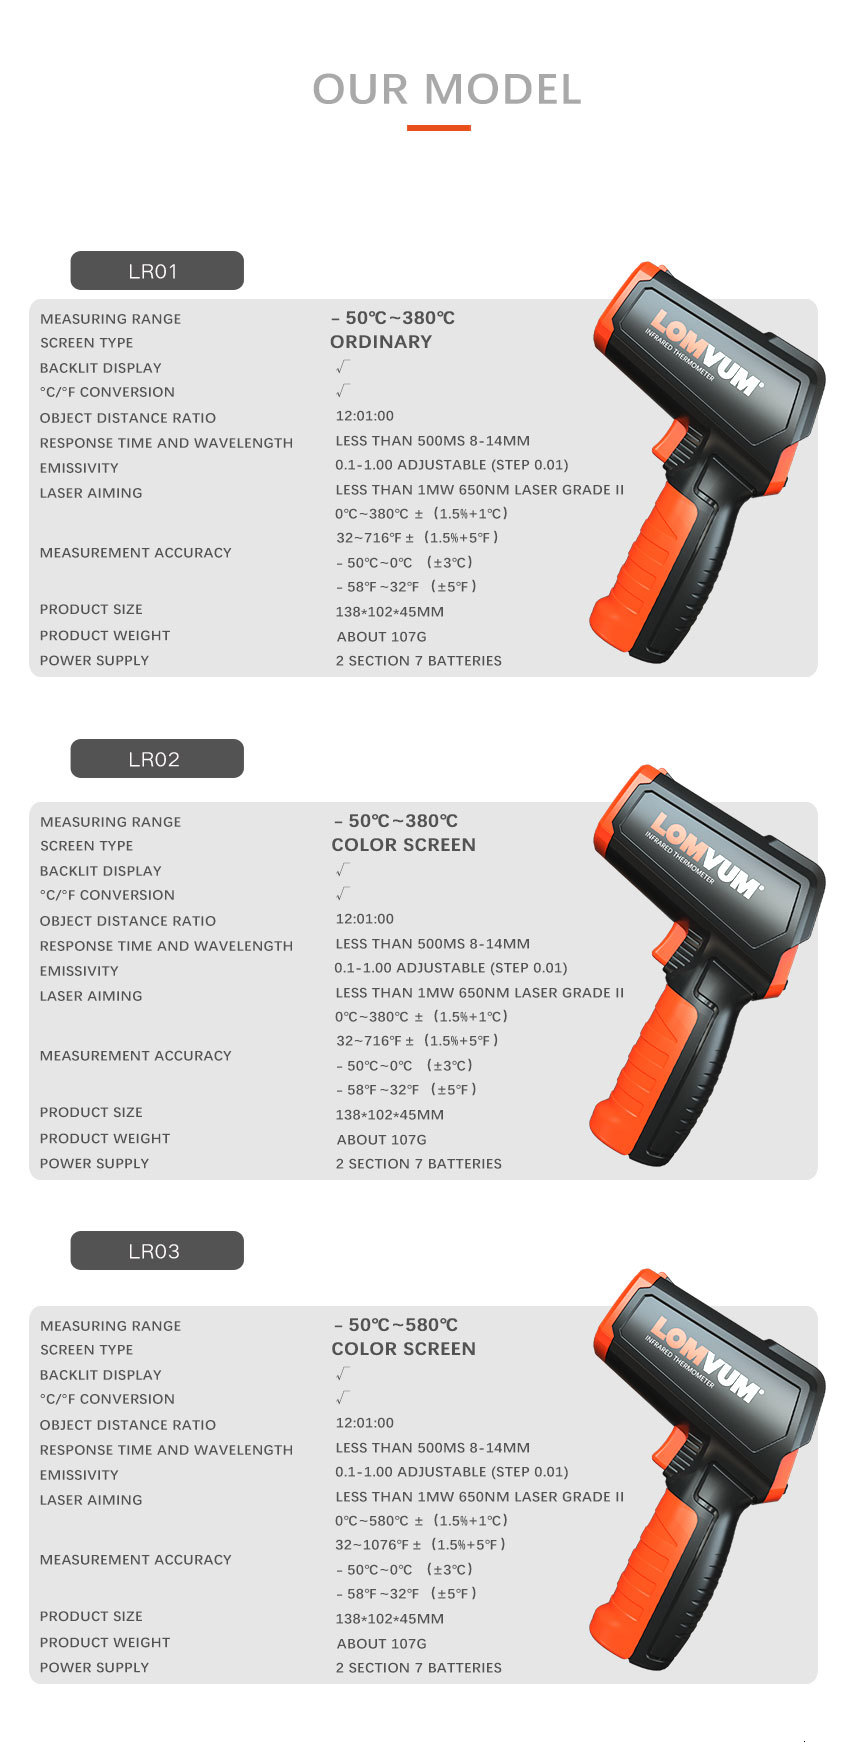 H92f3afa201c049f9a11c5378ce57fcdet LOMVUM Digital Infrared Thermometer Non Contact Temperature Gun Laser Handheld IR Temp Gun Colorful LCD Display 50-580C Alarm